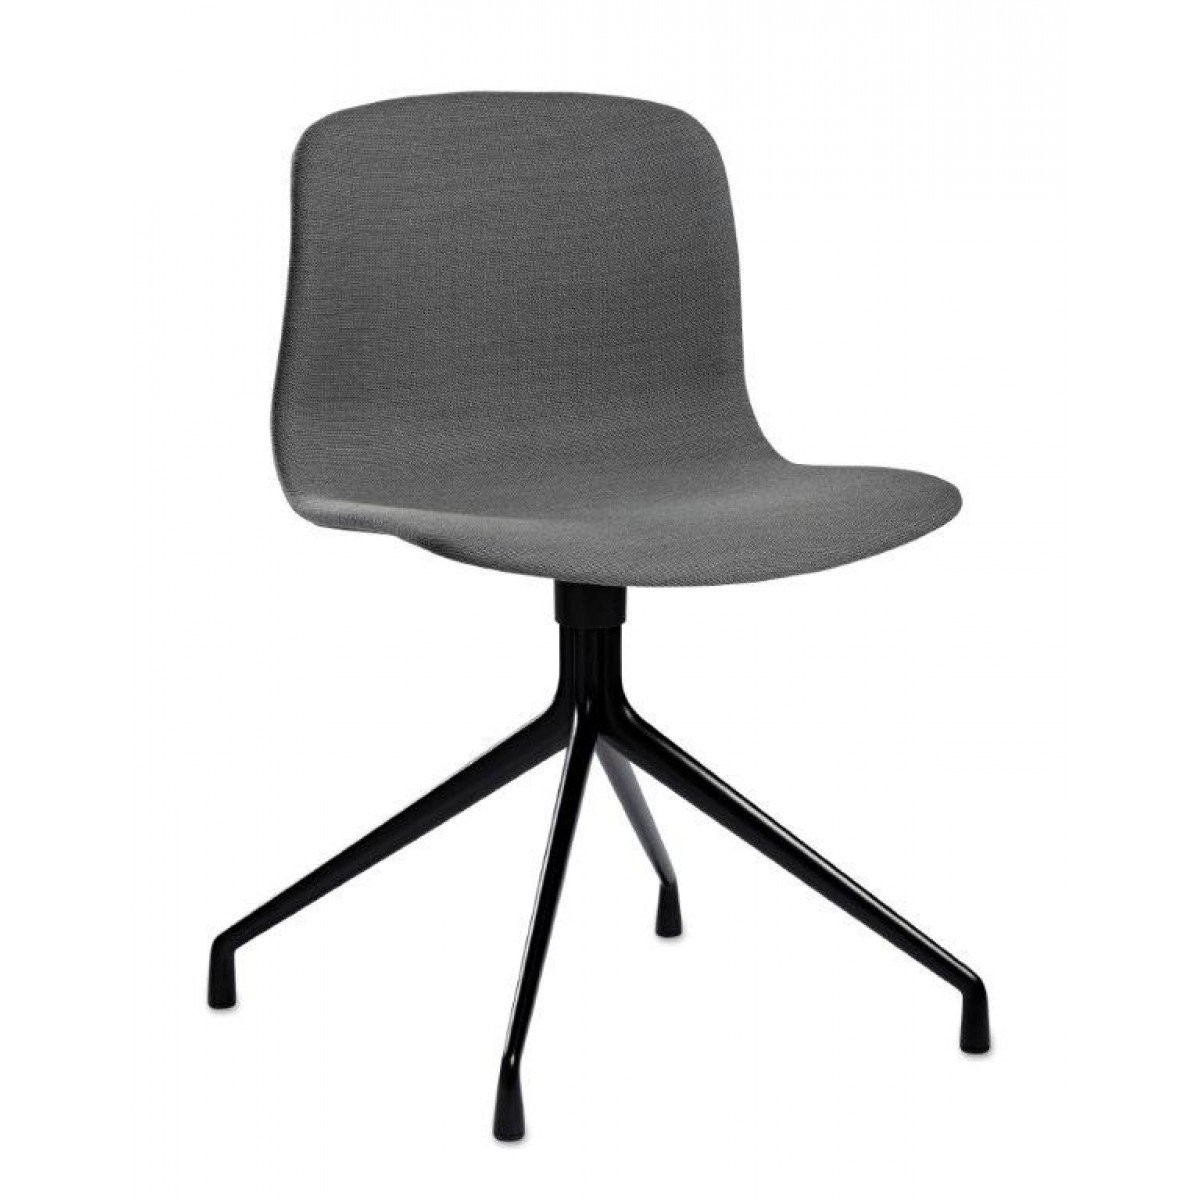 Hay About A Chair Aac 11 Stuhl Stoff Von Goodform Ch